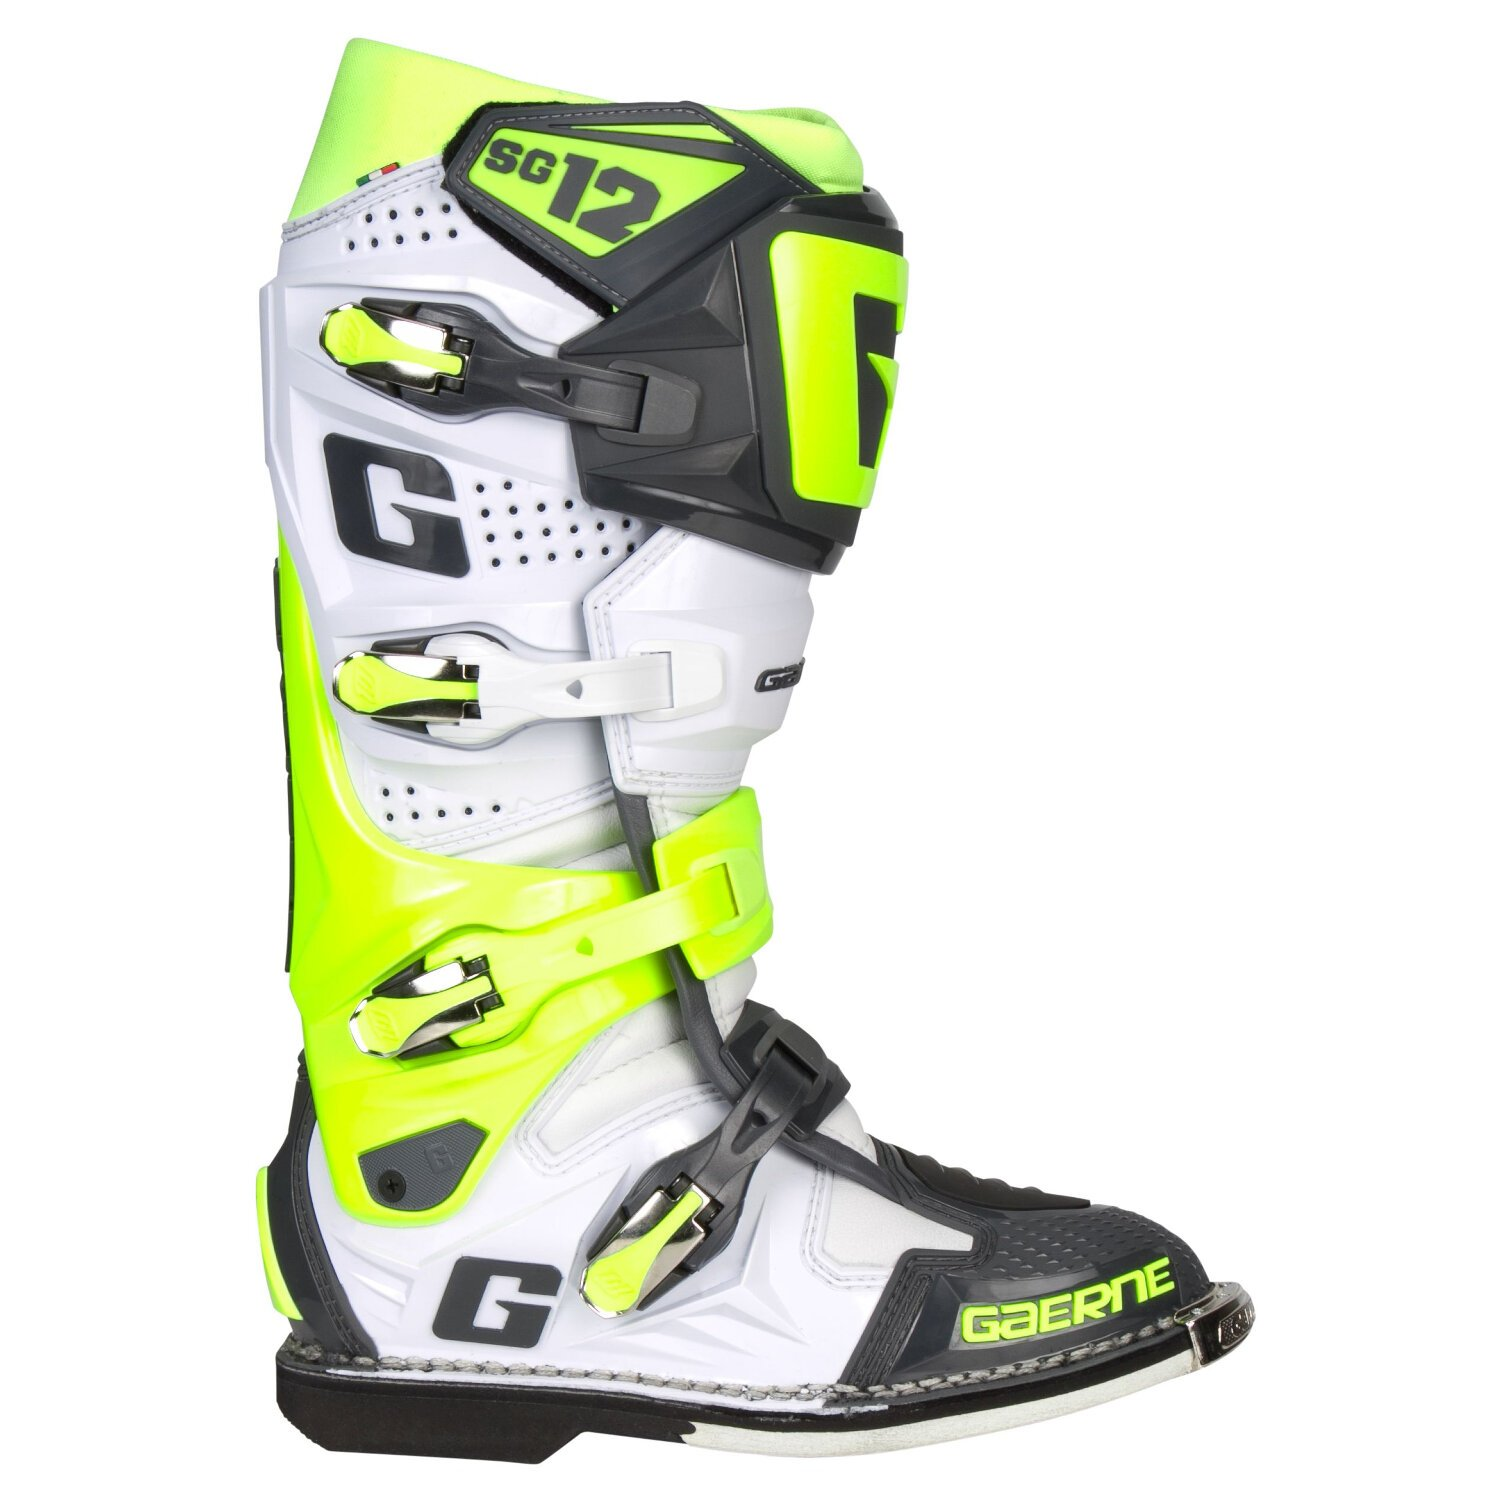 Gaerne Mx Boots Sg 12 White Fluo Yellow Grey Limited Edition